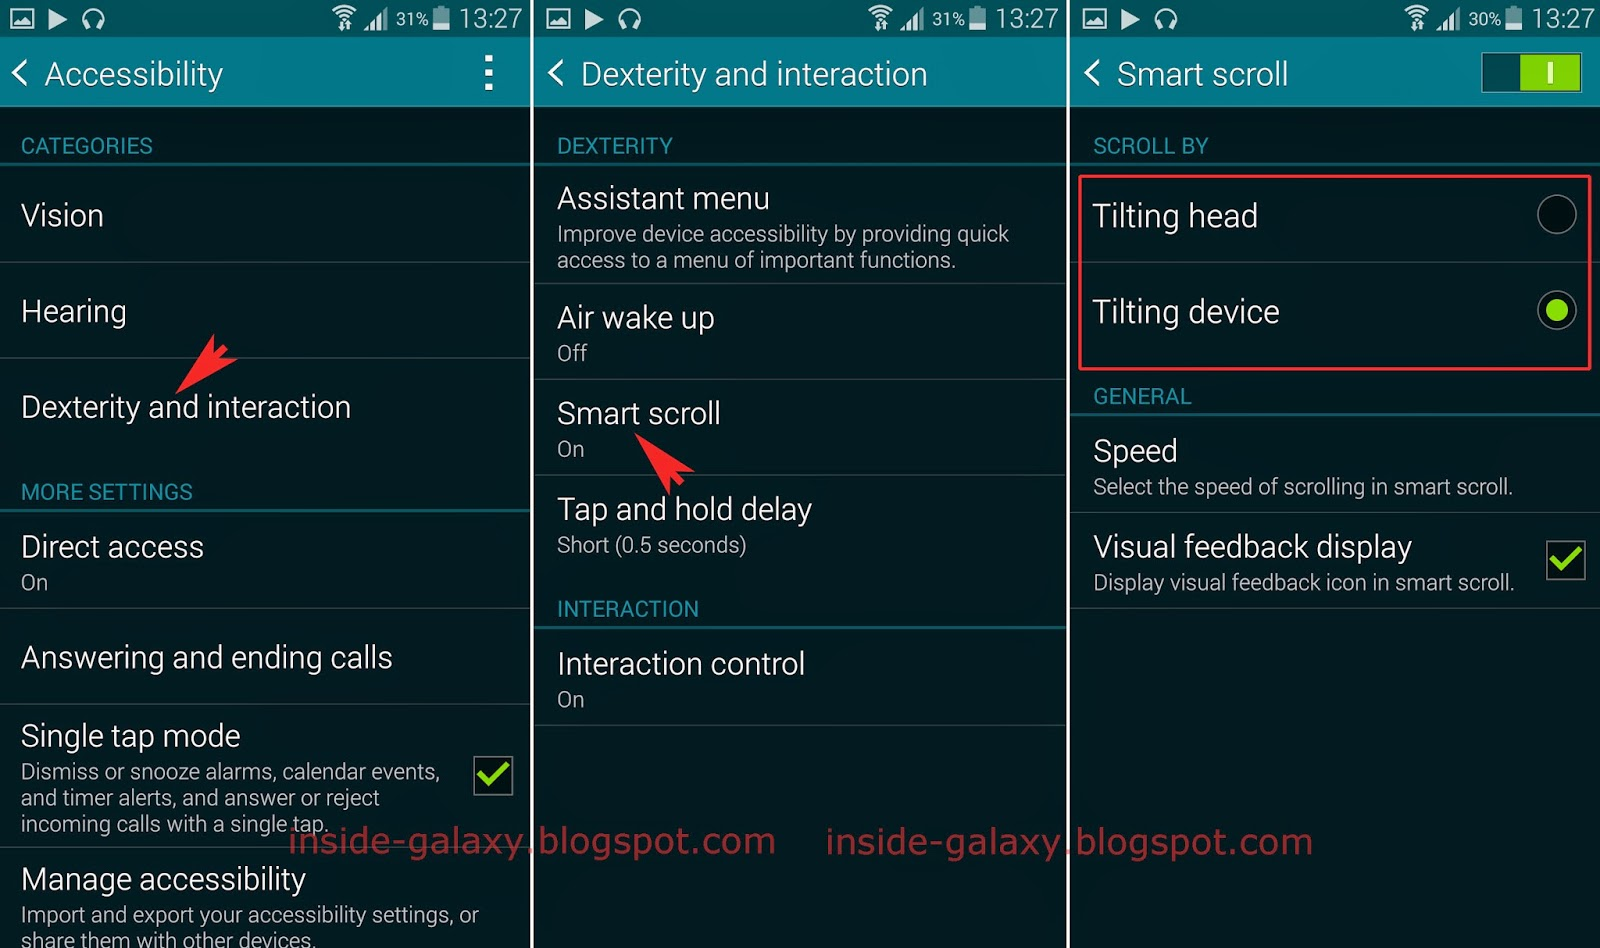 How to enable or disable the smart scroll feature